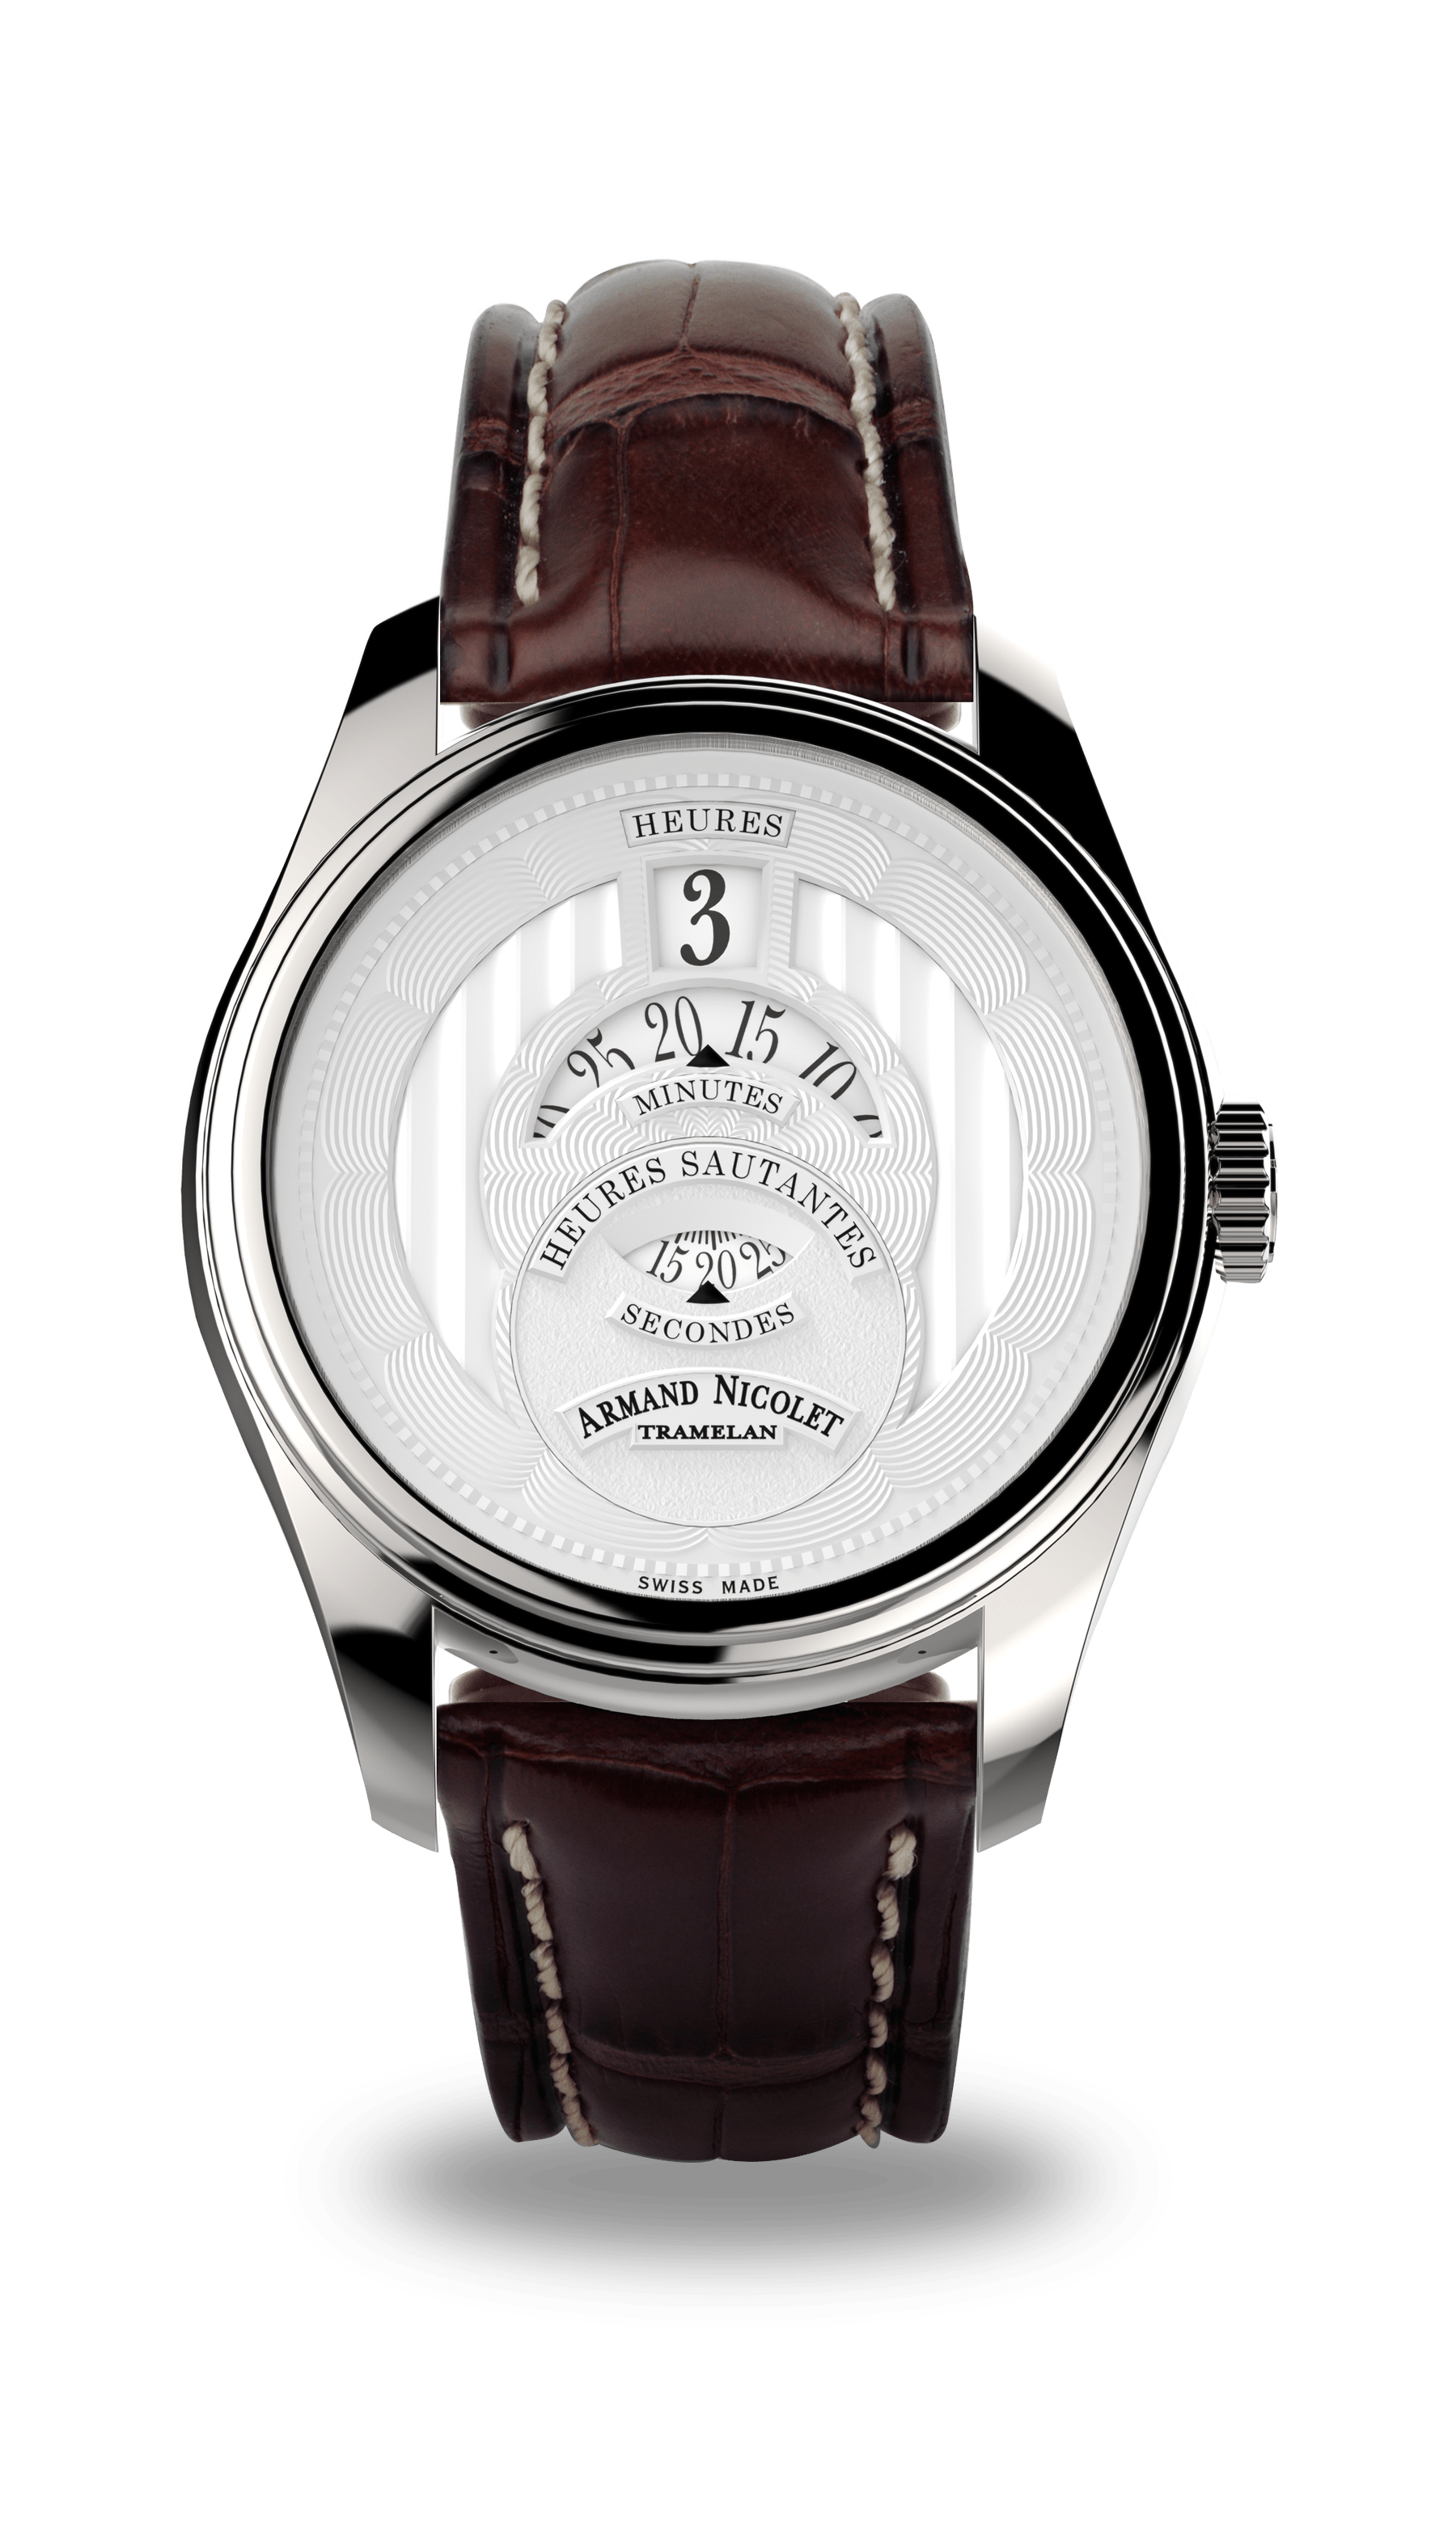 2aab872e972 HS2 - Stainless Steel 316L with Brown Alligator Strap - A136AAA-AG-P974MR2  - Armand Nicolet